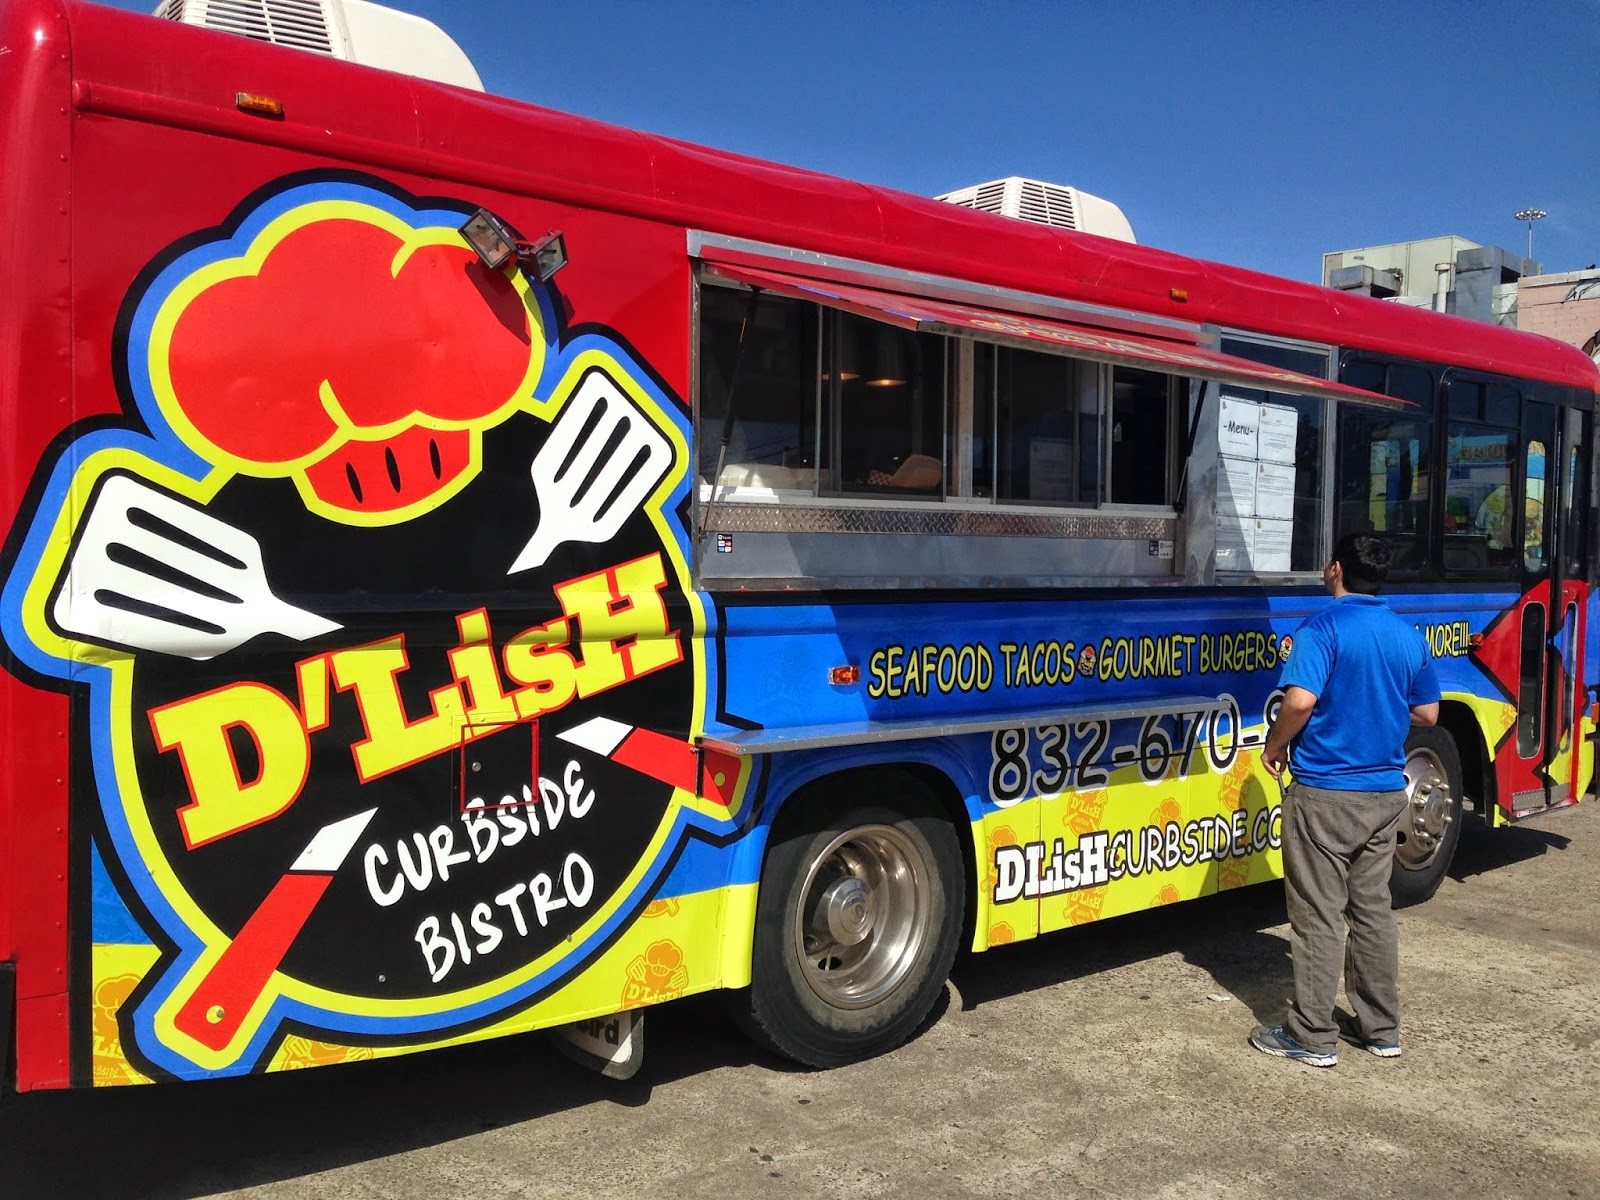 D'Lish Food Truck, Houston TX